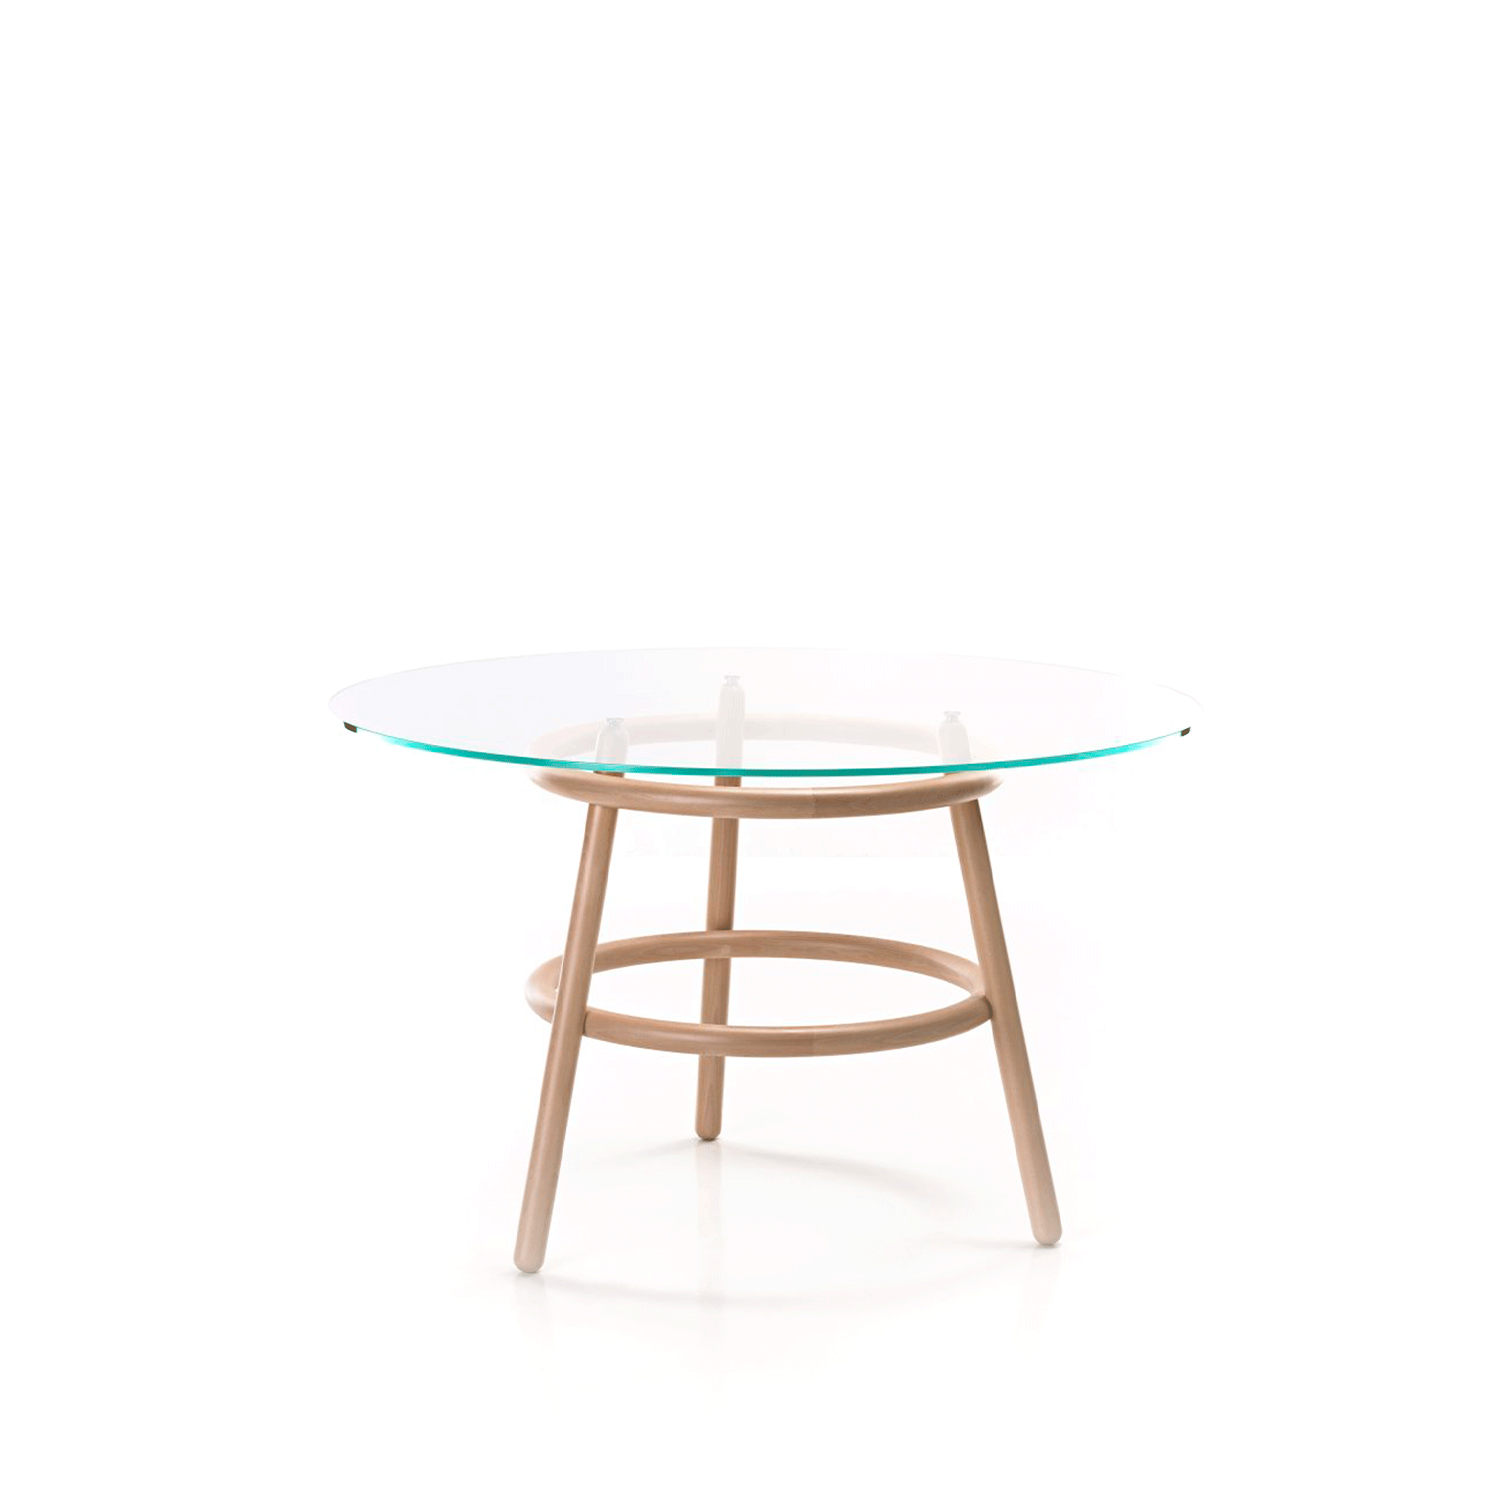 Magistretti 03 02 Table - Magistretti 03 02 is a table designed by the designer Vico Magistretti for Gebrüder Thonet Vienna. It has a support structure in solid beech with round section elements. The base is made up of three legs intersected by two hoops of the same diameter. The round, flush top is in a tempered polished glass.